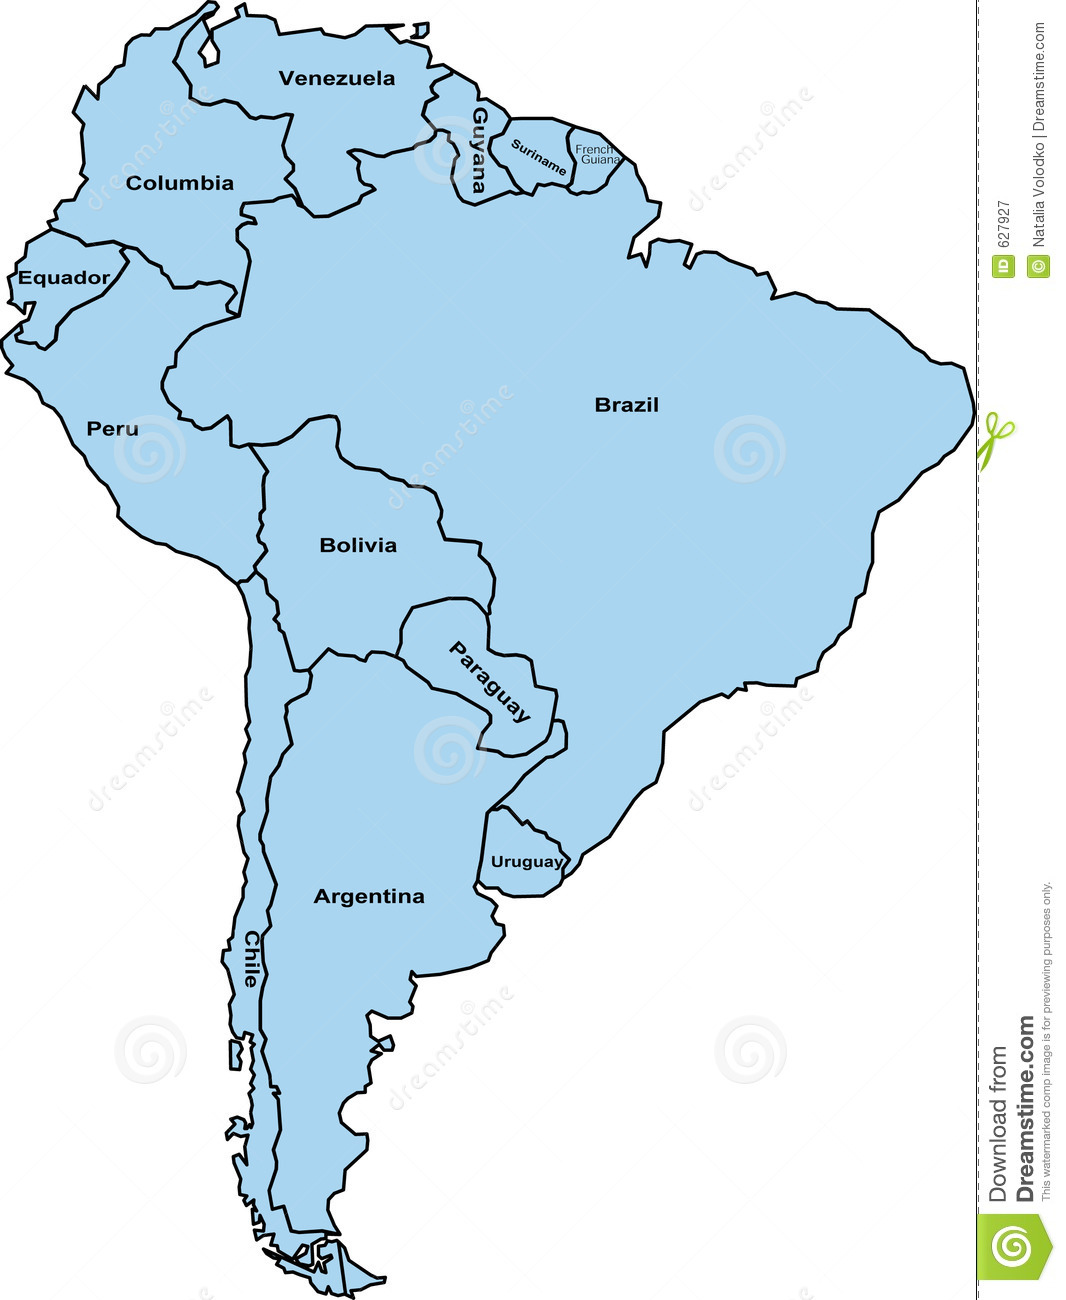 Download Free North America Maps Map Of North America Continent - South america map outline